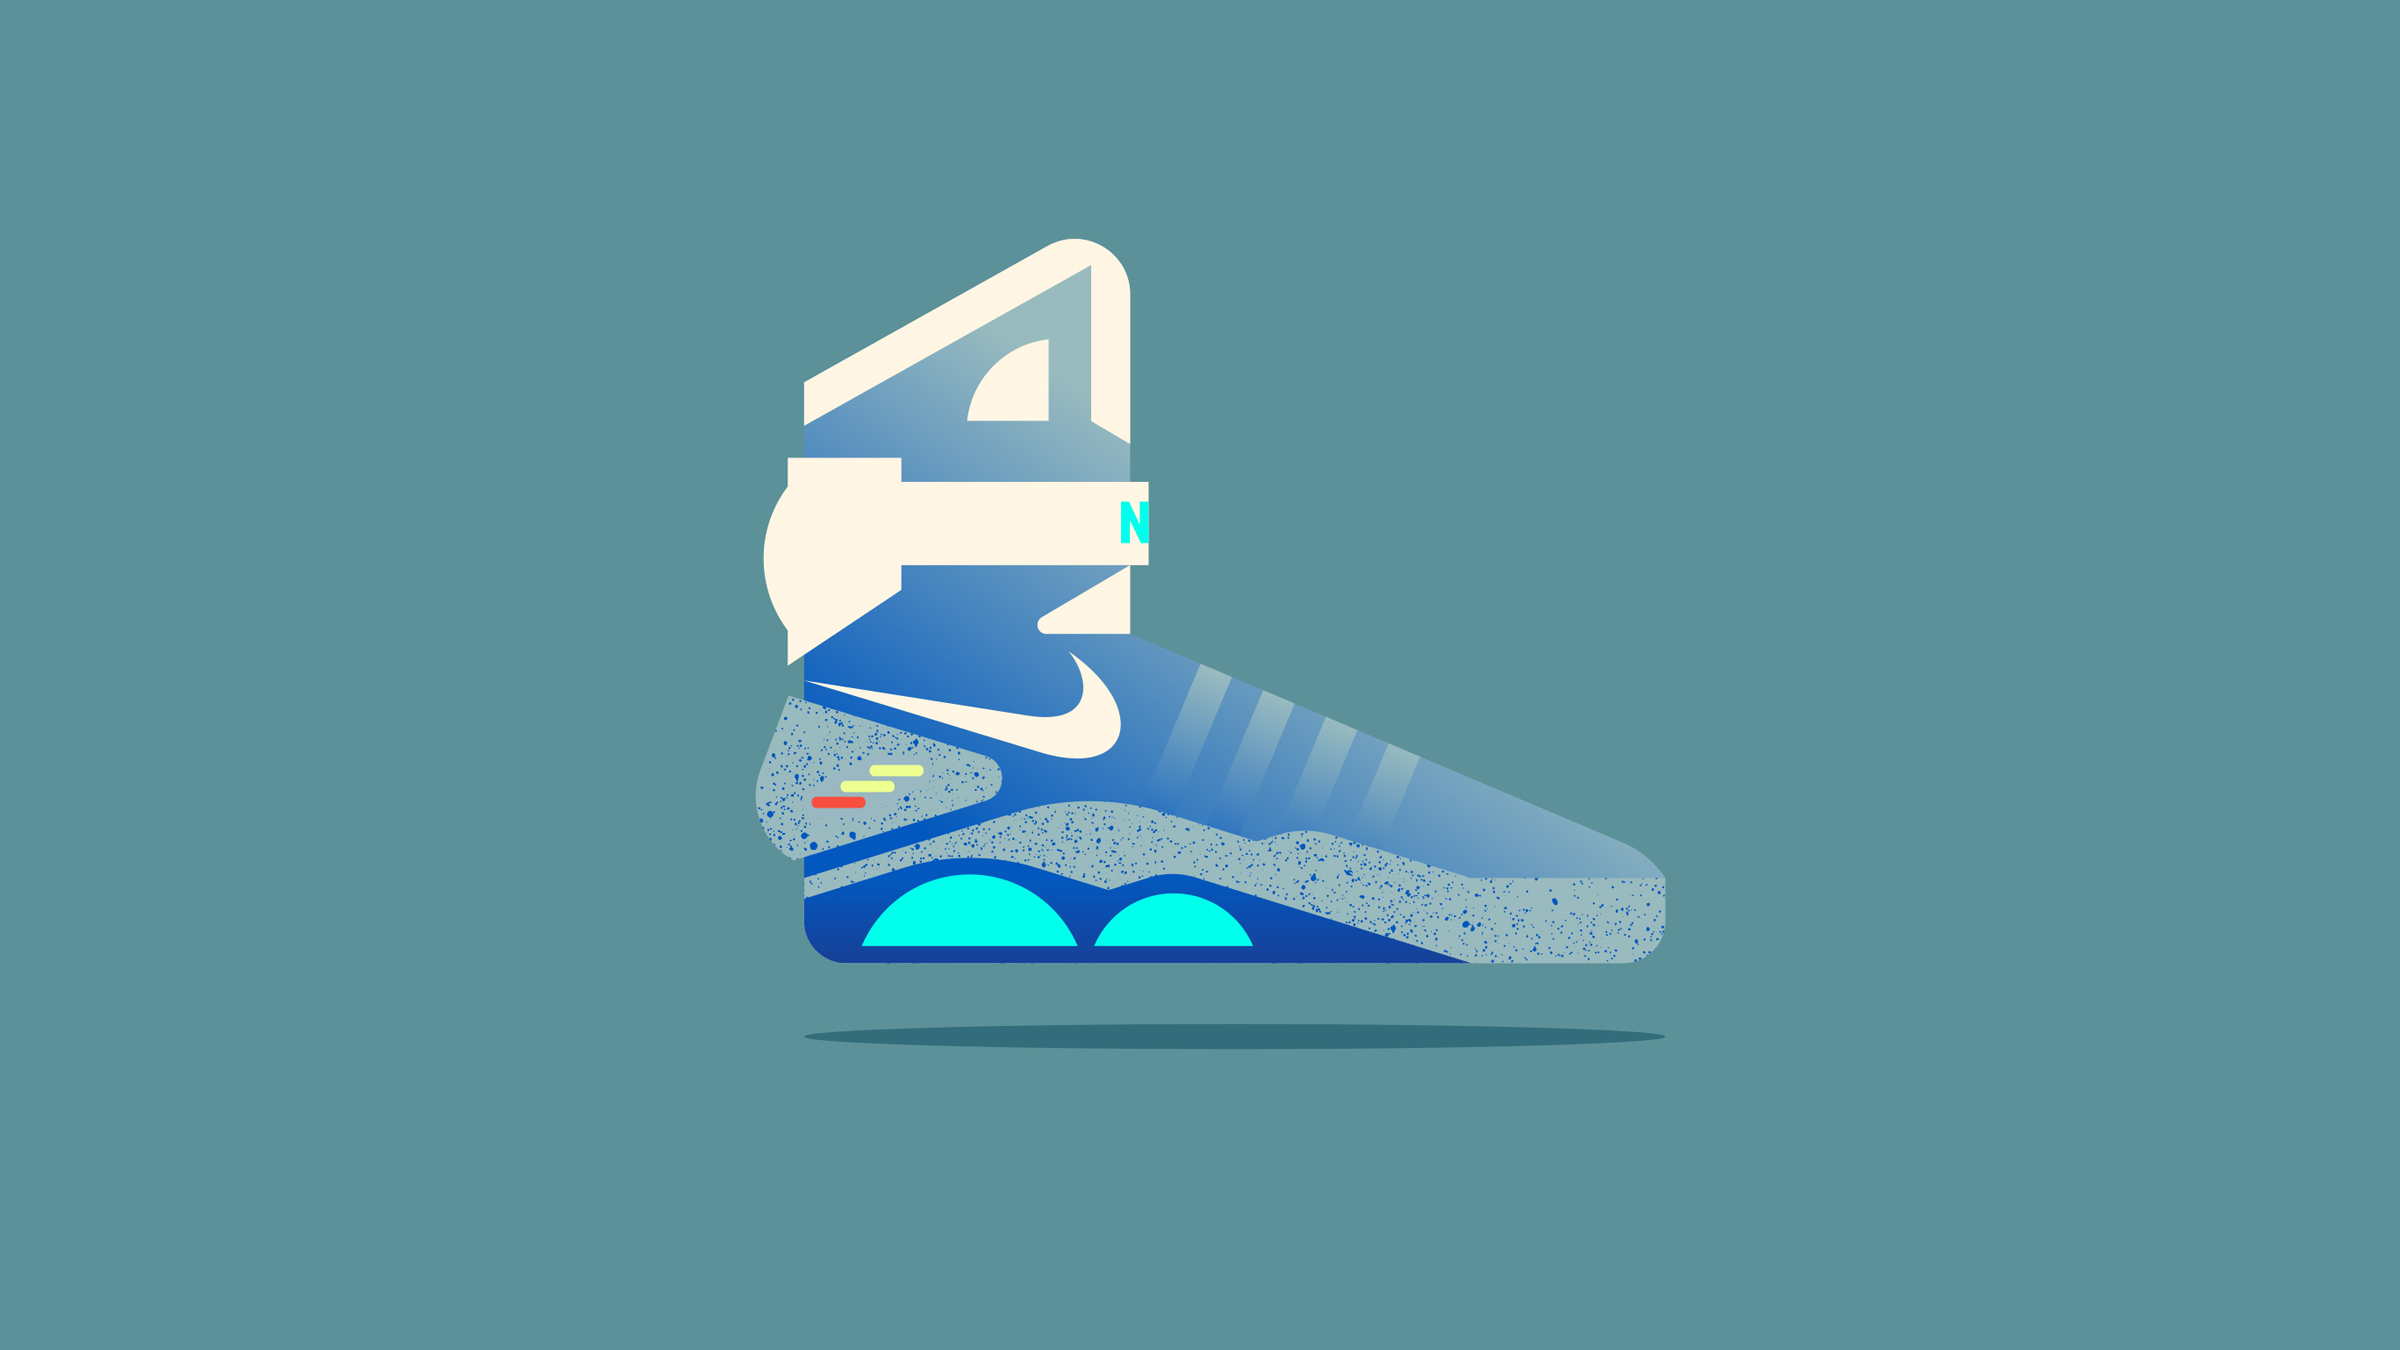 Nike Air Mag Illustration